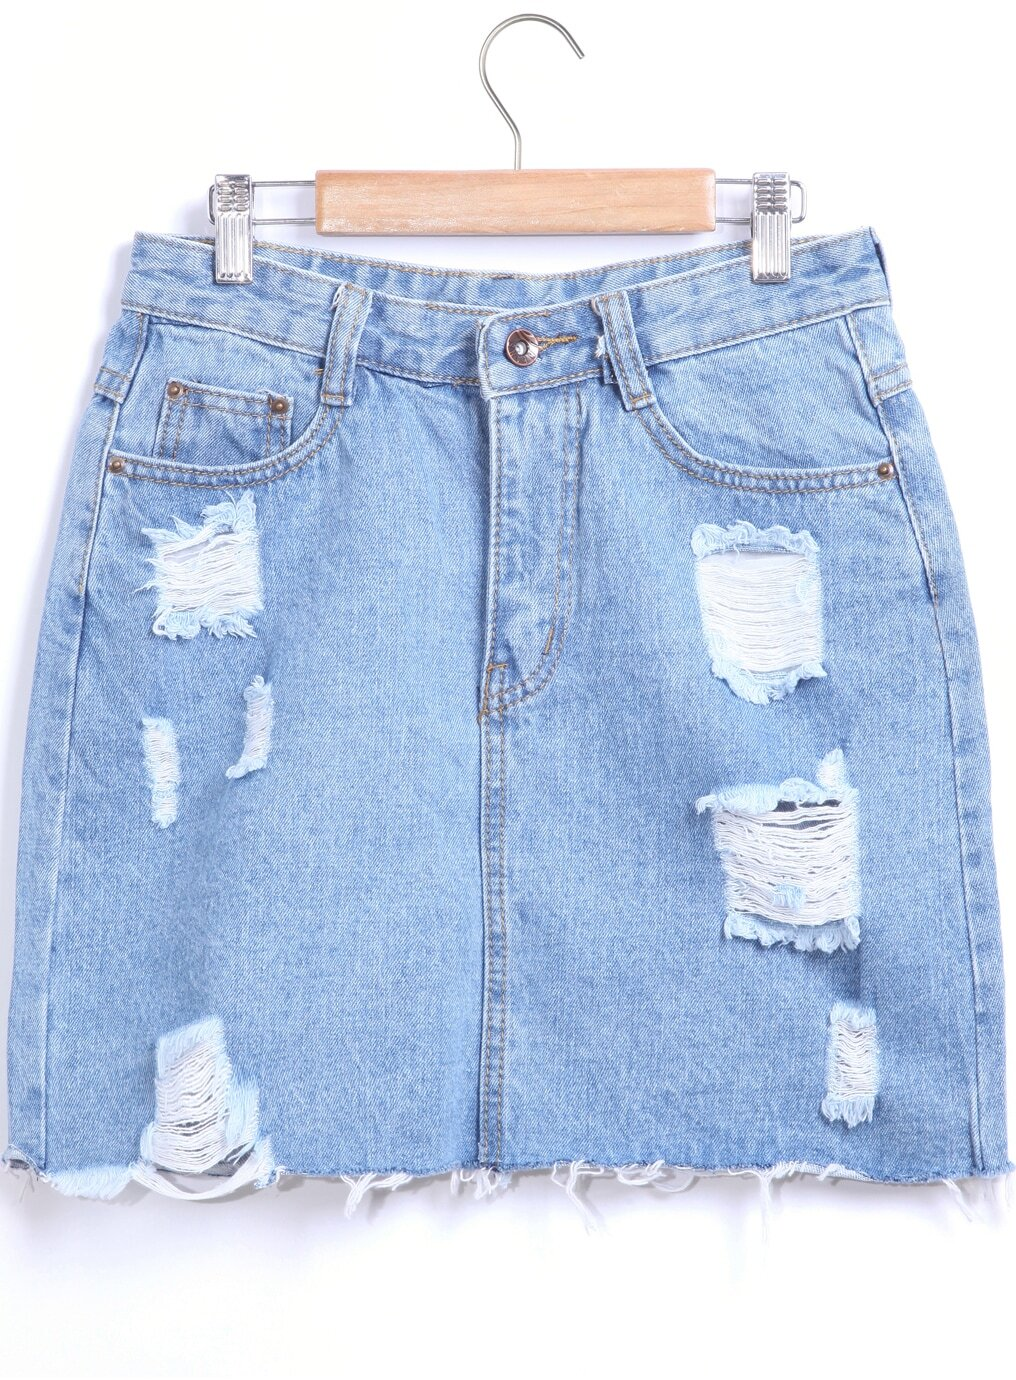 Ripped Jean Skirt - Is Jeans